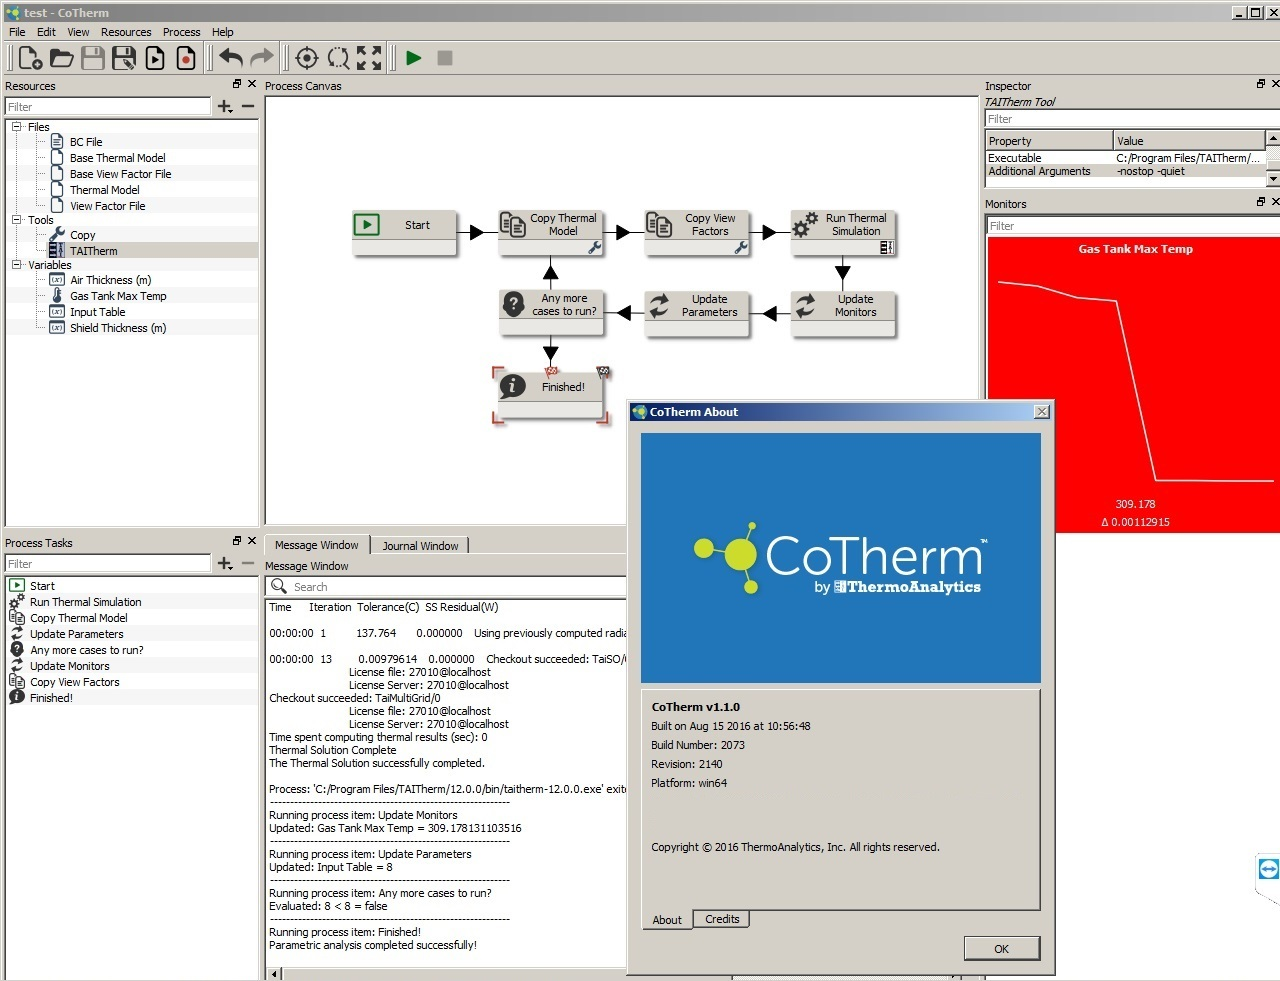 work with ThermoAnalytics CoTherm 1.1.0 Win-Linux FULL